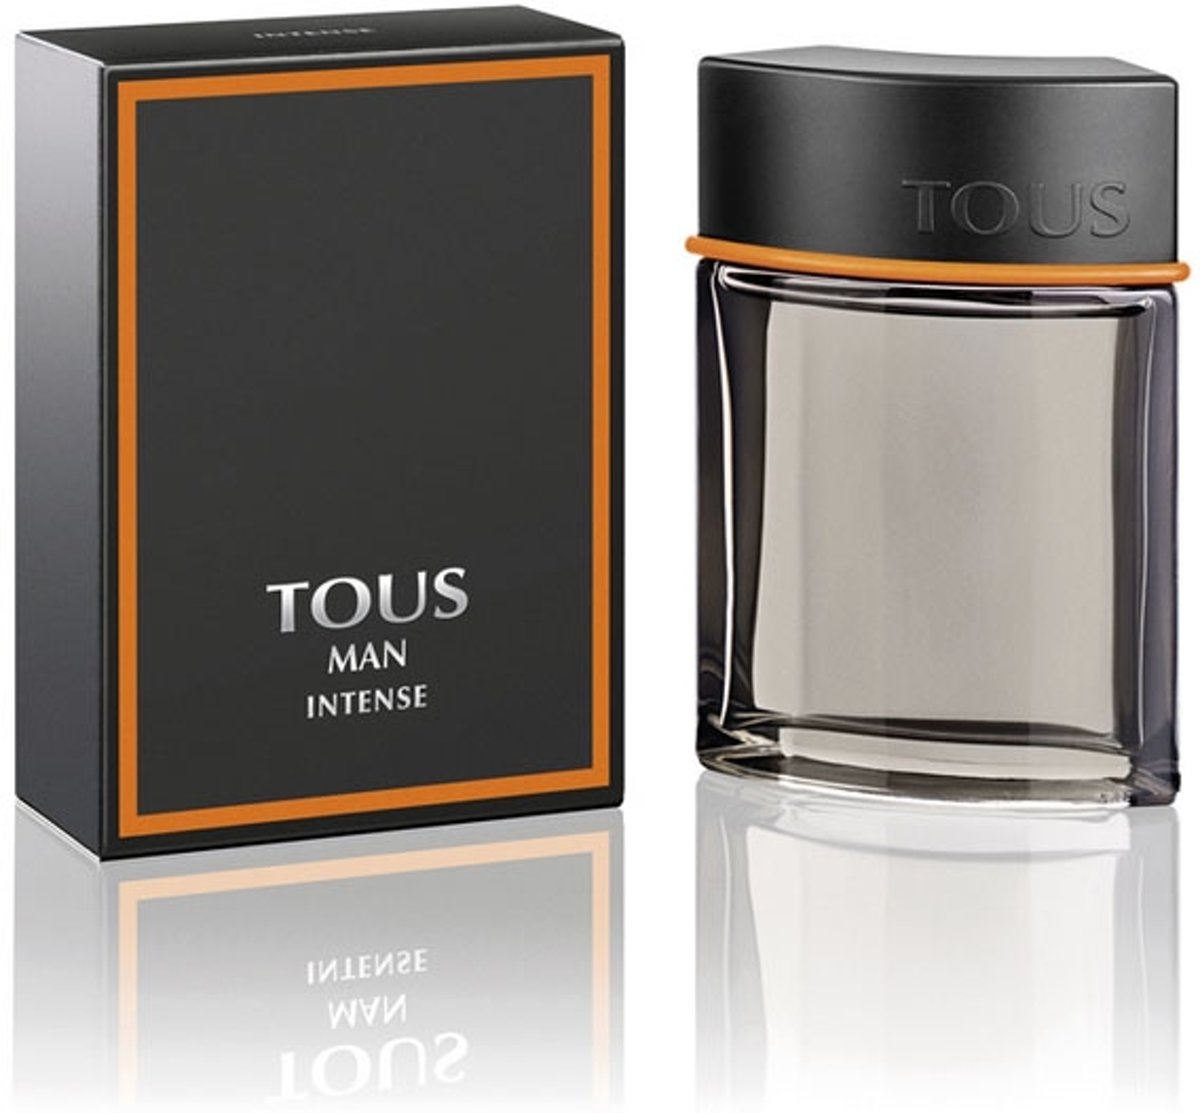 SENSUAL TOUCH eau de toilette spray 100 ml